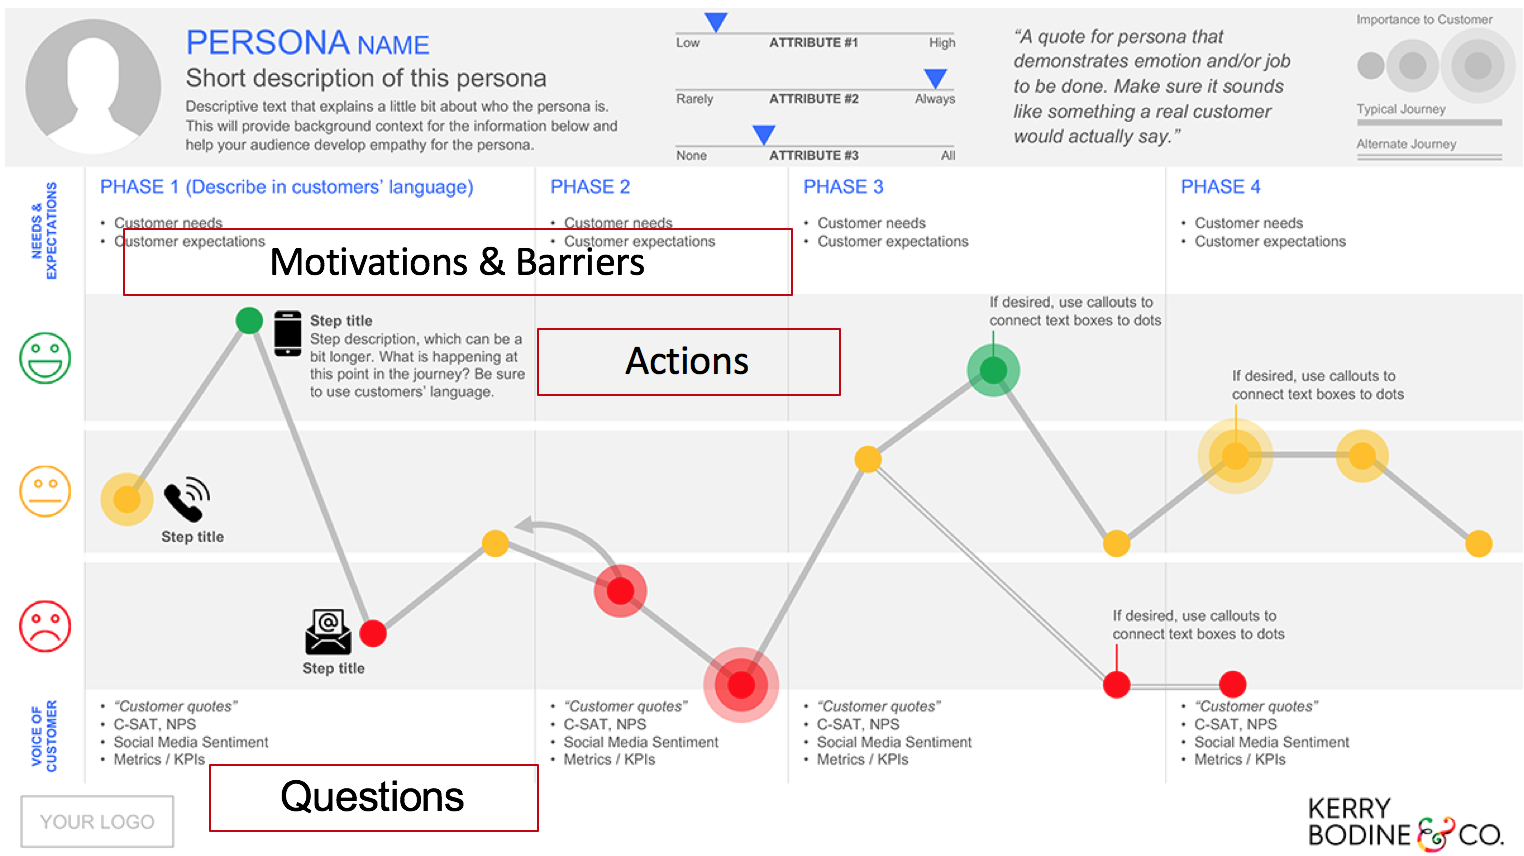 Overlaying Key Questions - This Customer Journey Maps incorporates the persona and attributes about that persona. It also answers what actions, motivations, questions, and barriers the customer has during each phase in this case.